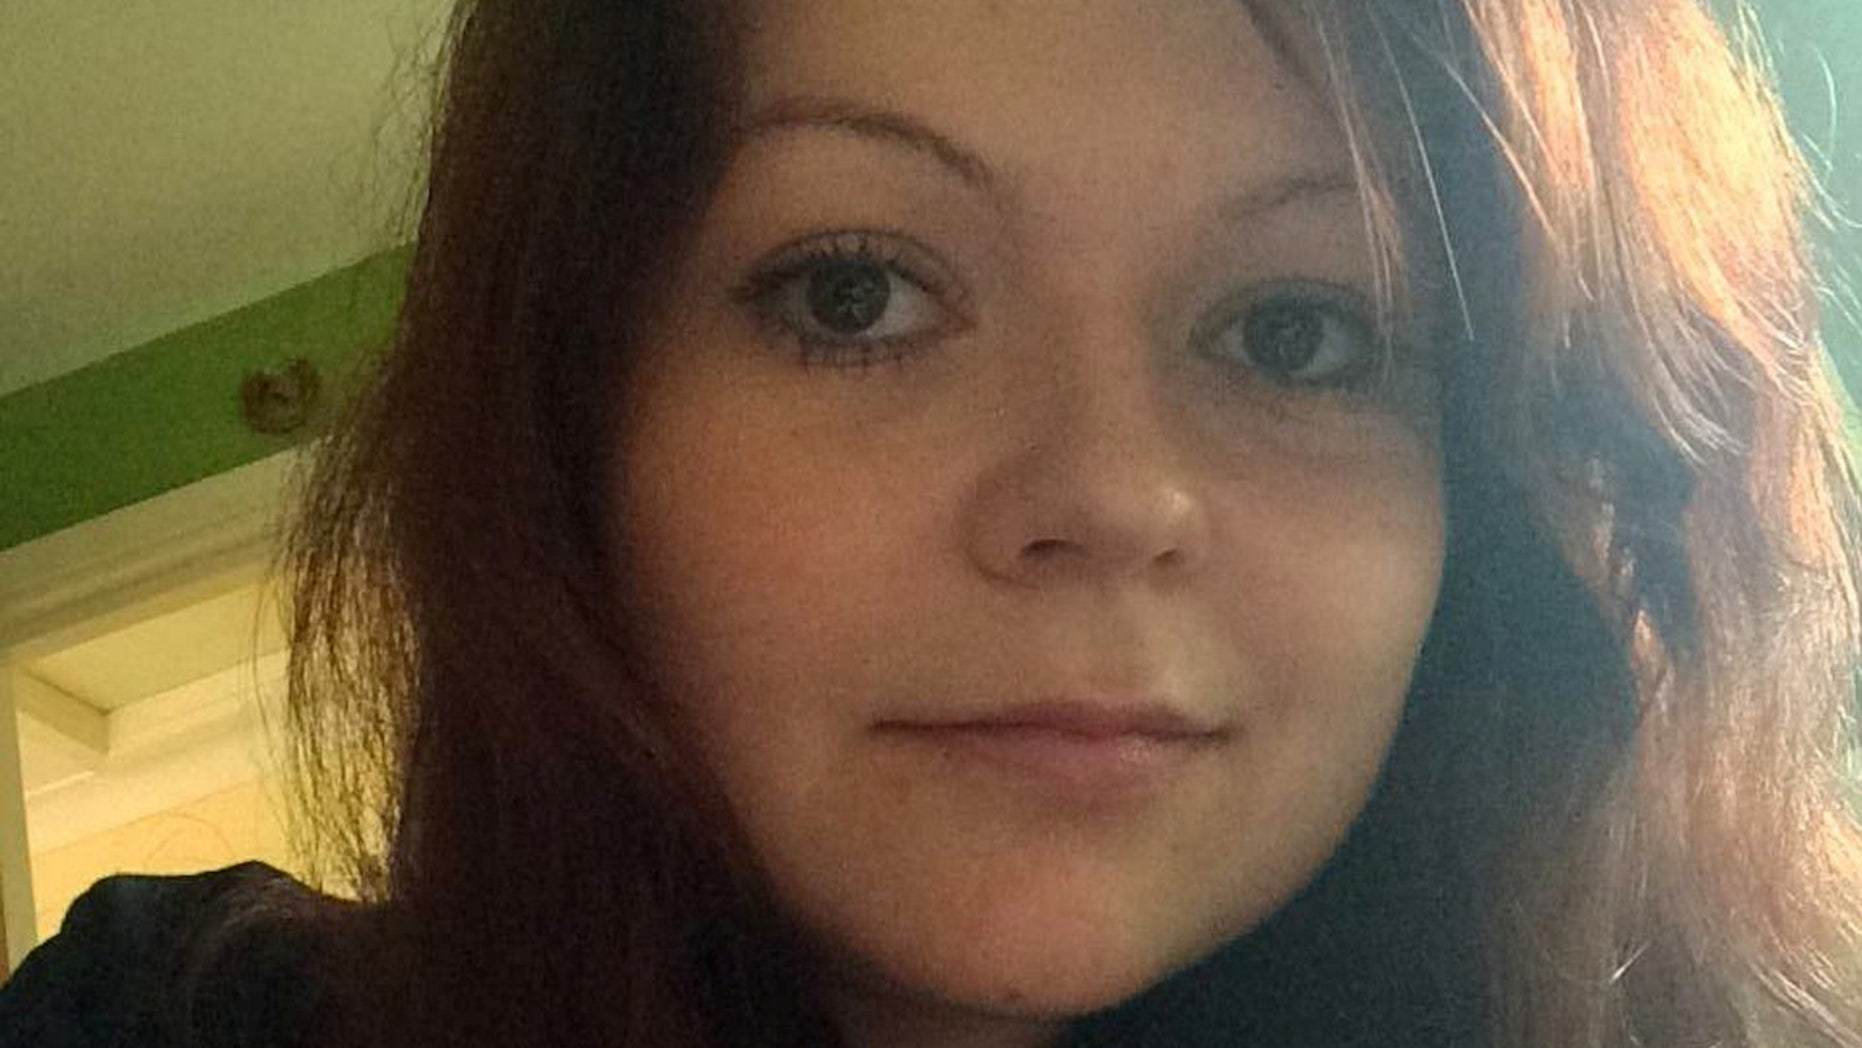 An undated photograph shows Yulia Skripal, daughter of former Russian Spy Sergei Skripal, taken from Yulia Skripal's Facebook account in London